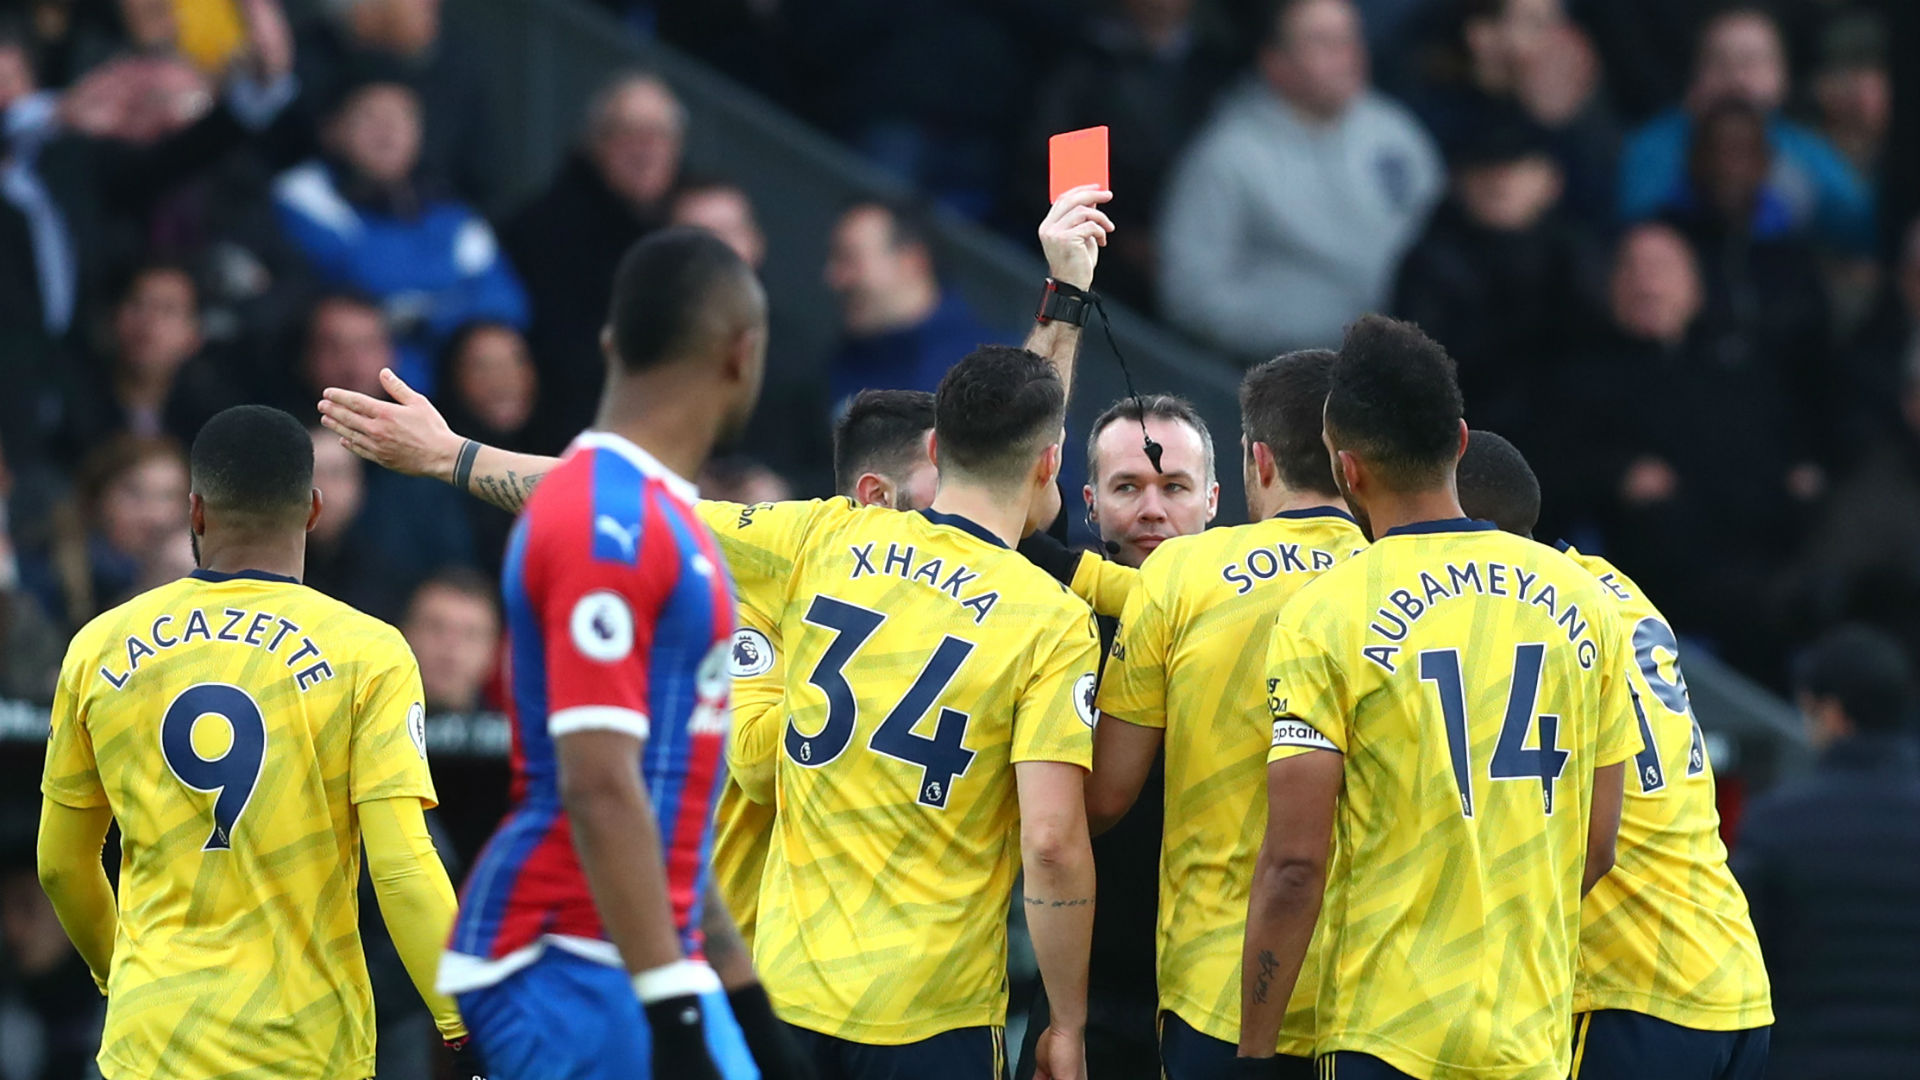 It looked nasty - Arteta has no complaints over Aubameyang's red card